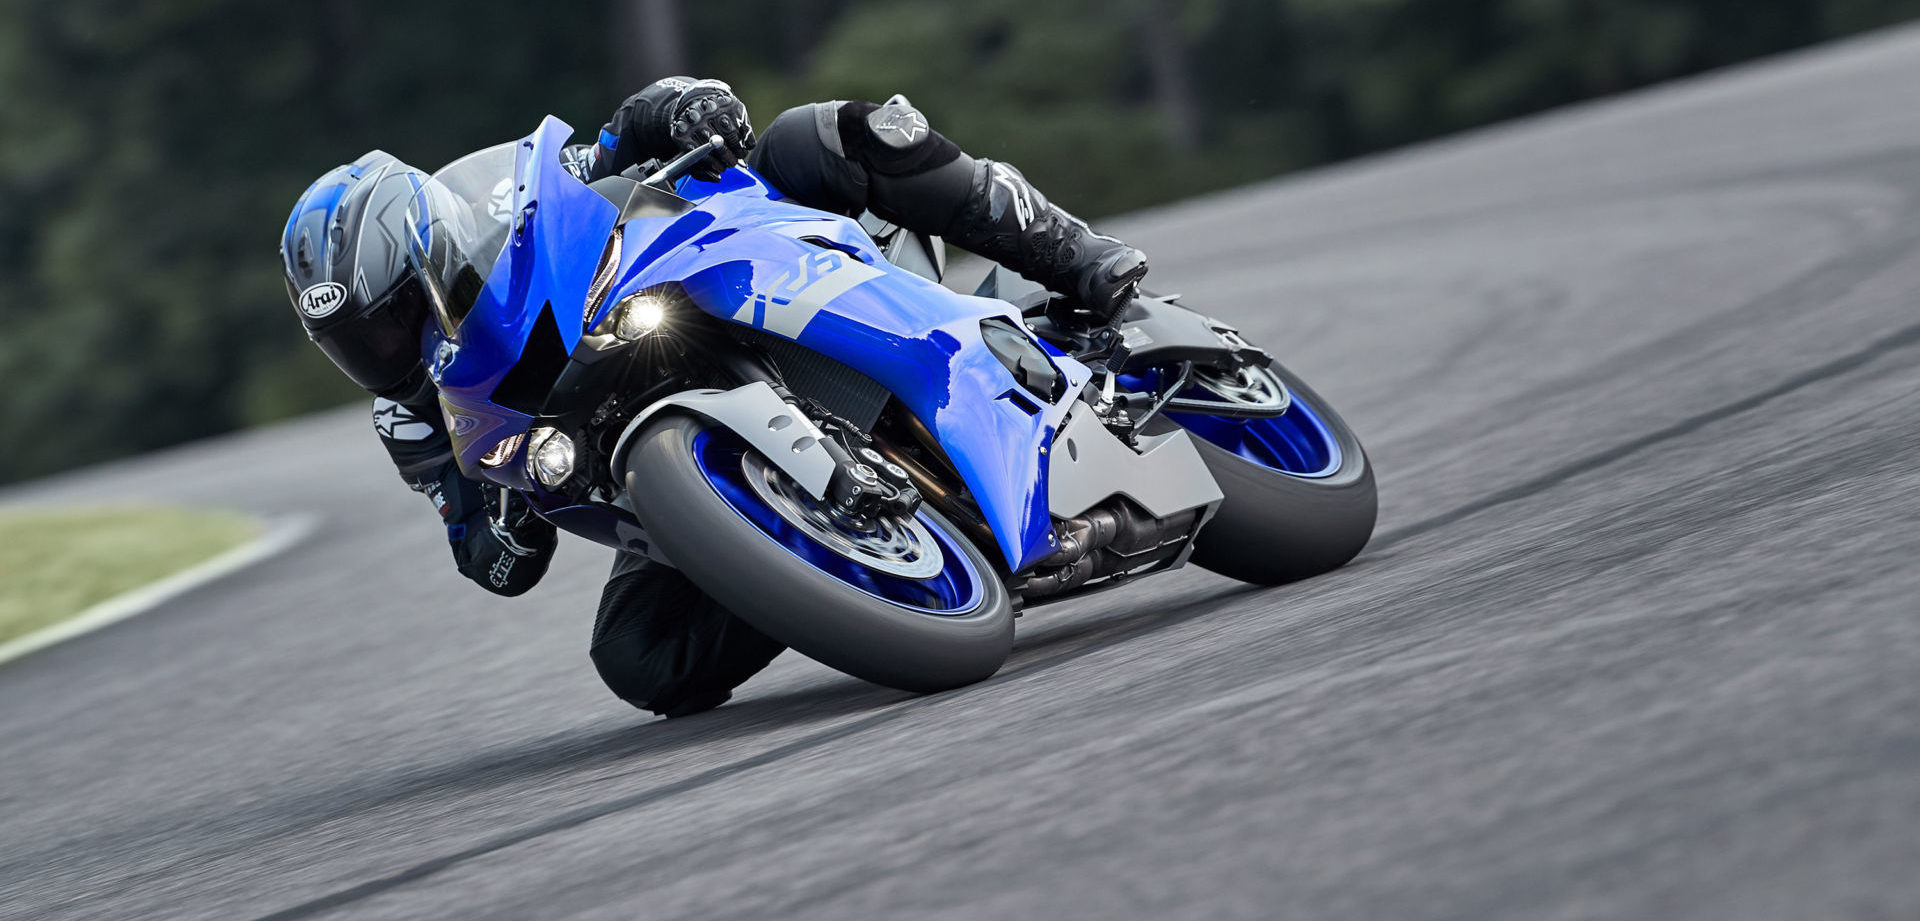 A 2020 Yamaha YZF-R6 streetbike at speed on a racetrack. Photo courtesy Yamaha Motor Corp., U.S.A.